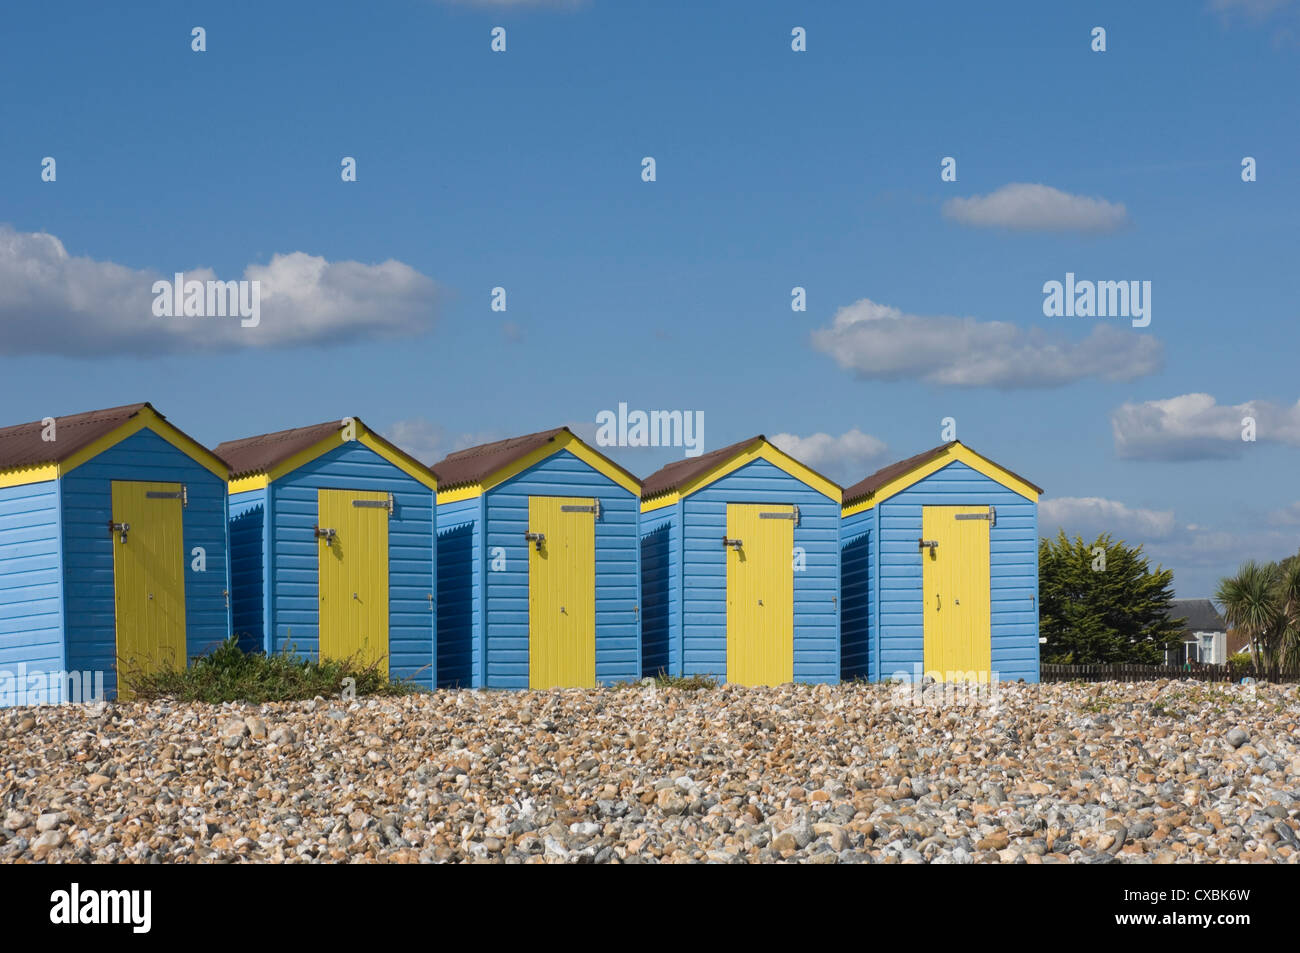 Five blue beach huts with yellow doors, Littlehampton, West Sussex, England, United Kingdom, Europe - Stock Image